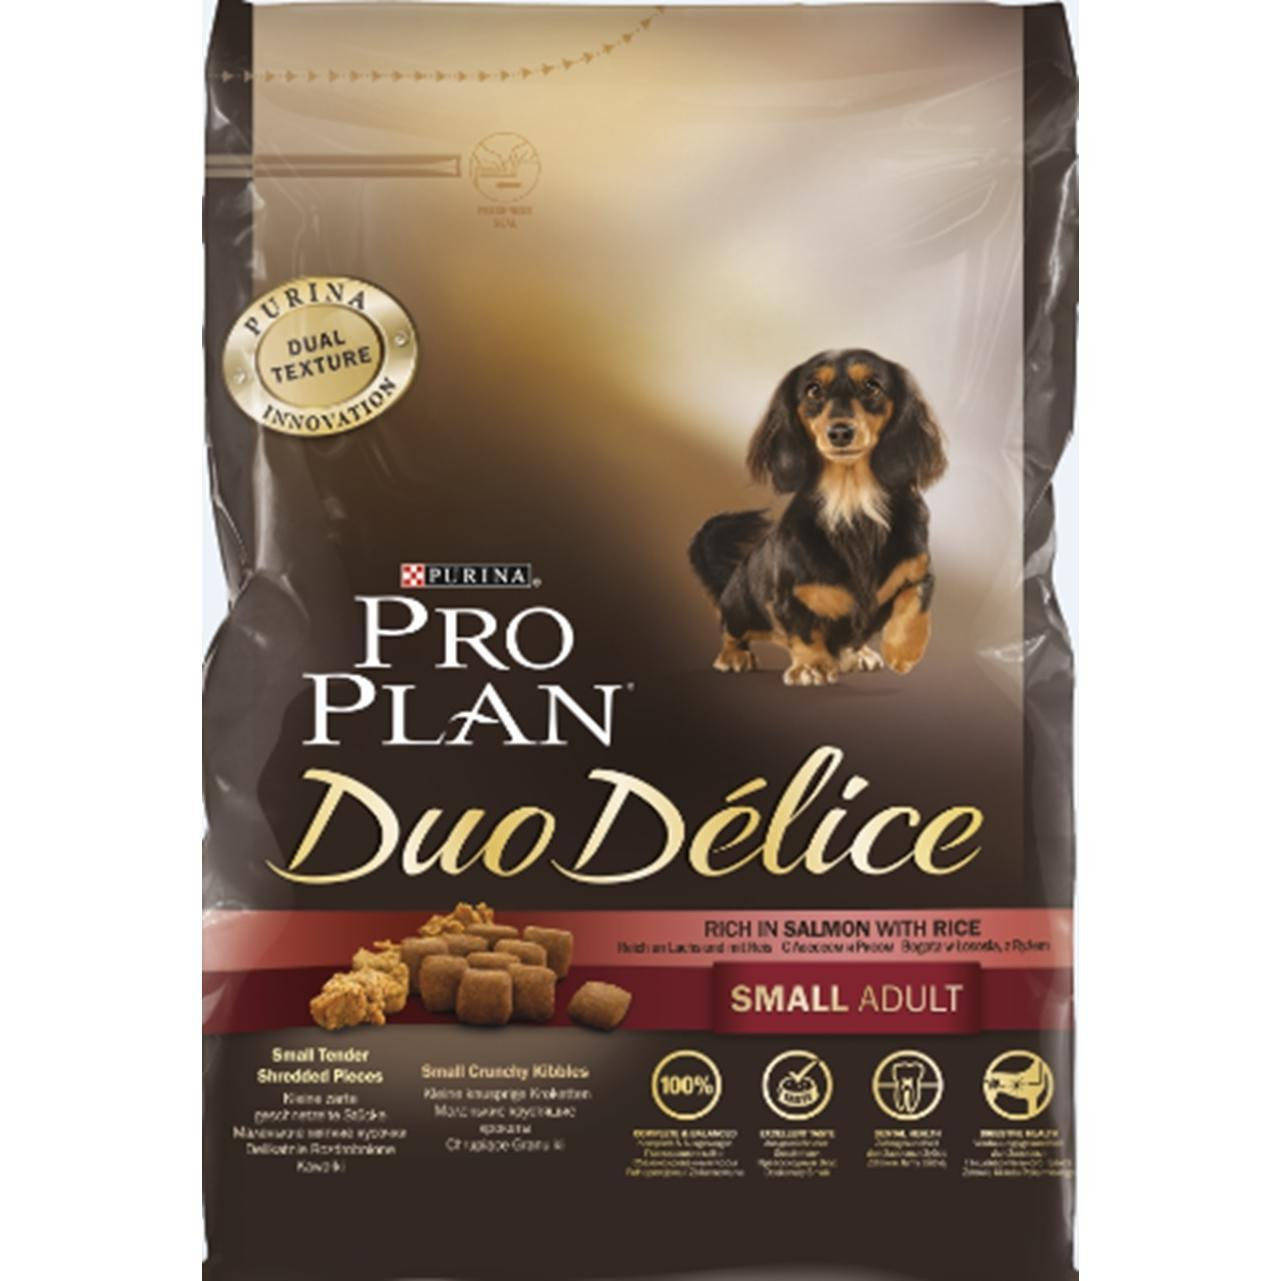 Pro Plan Duo Delice Small Adult корм д/с мелк.пород лосось/рис 700г